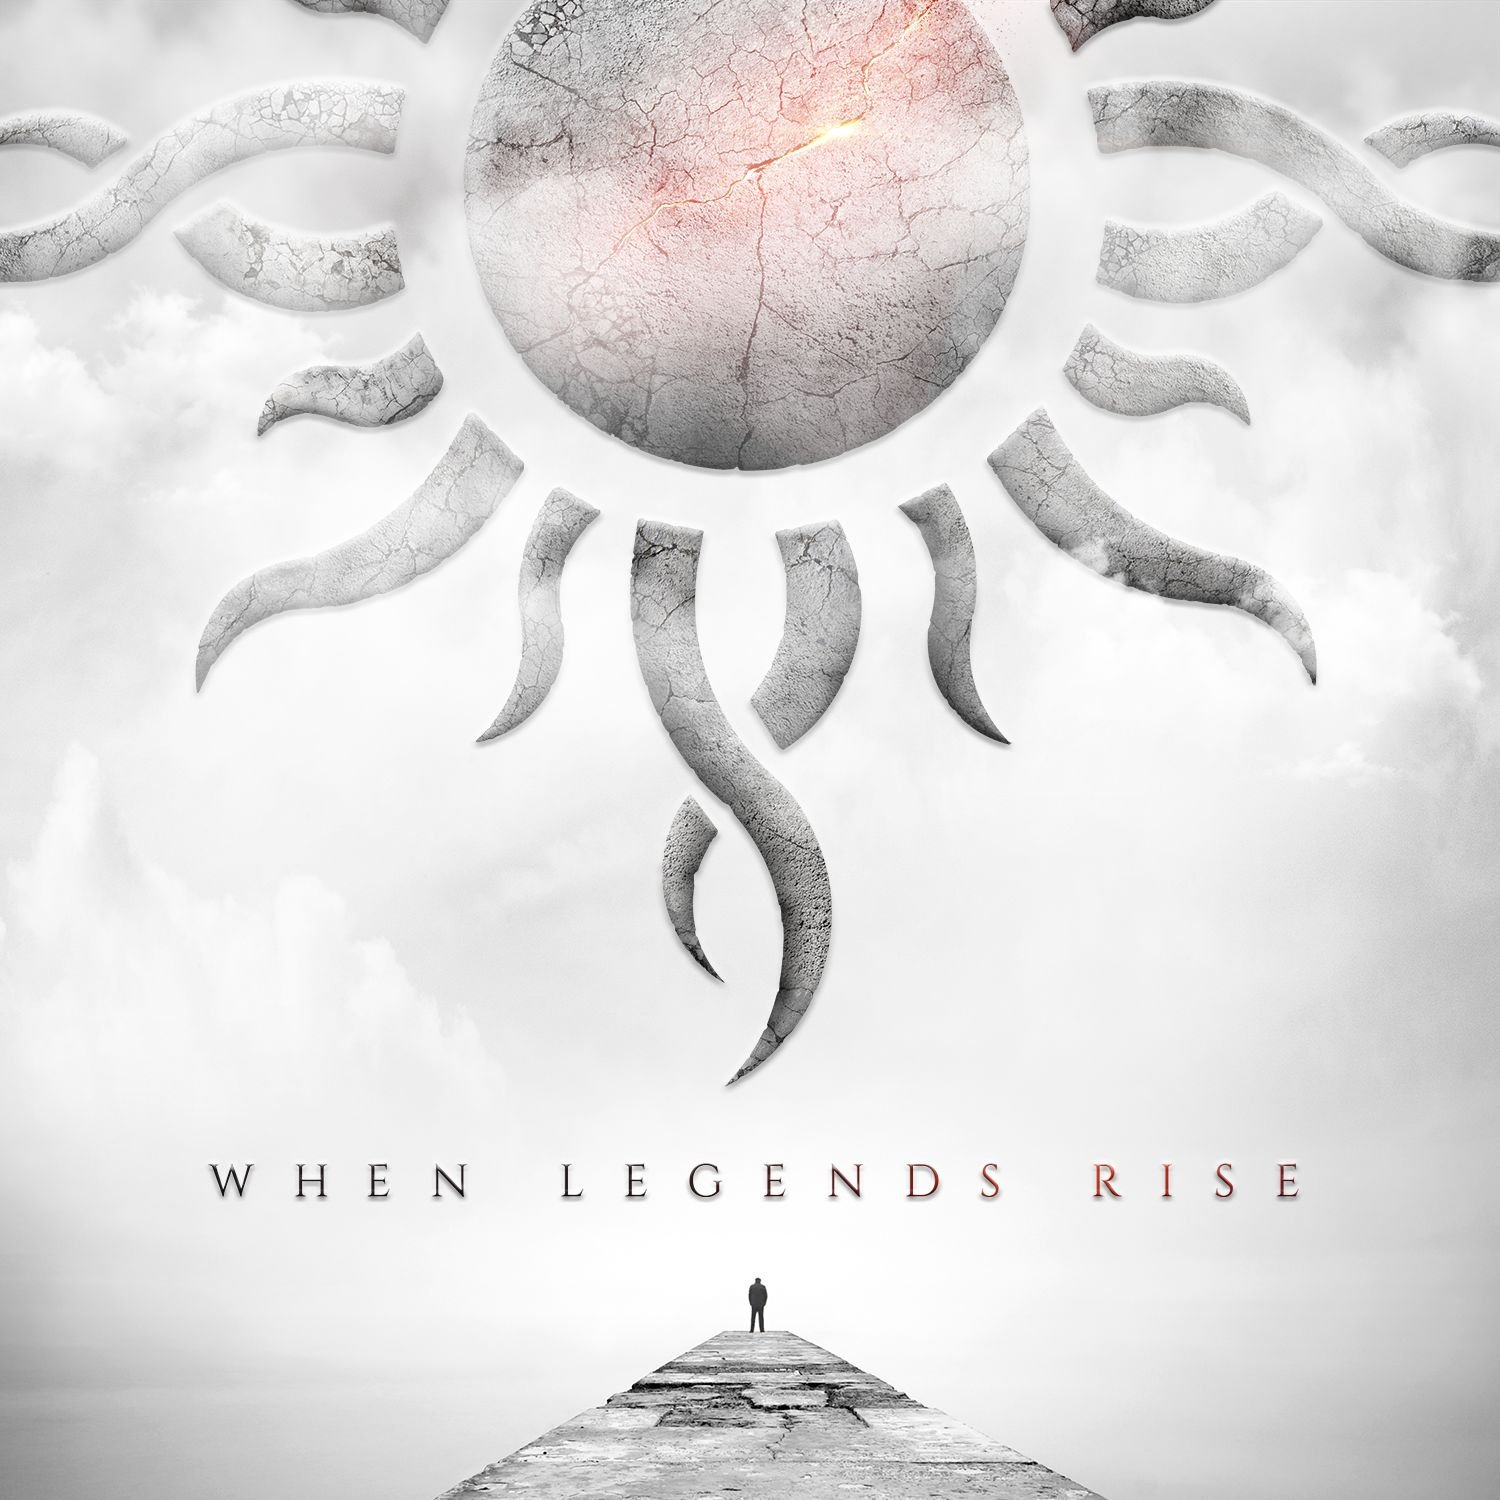 When Legends Rise by Bmg Rights Managemen